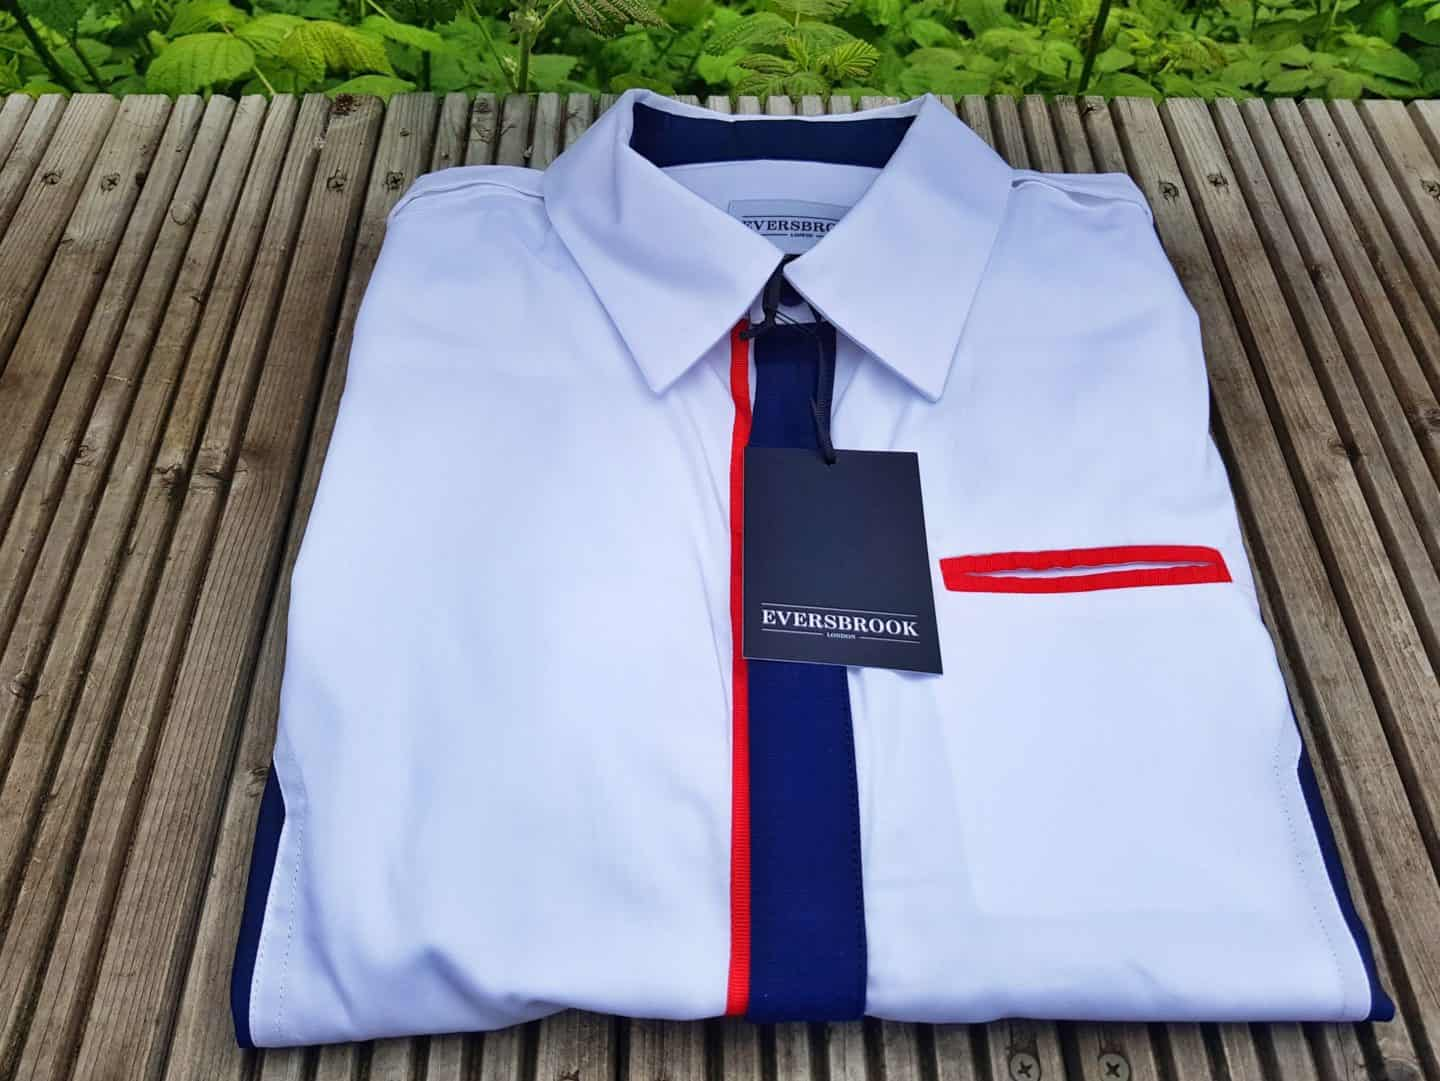 Designer shirt for father's day gift